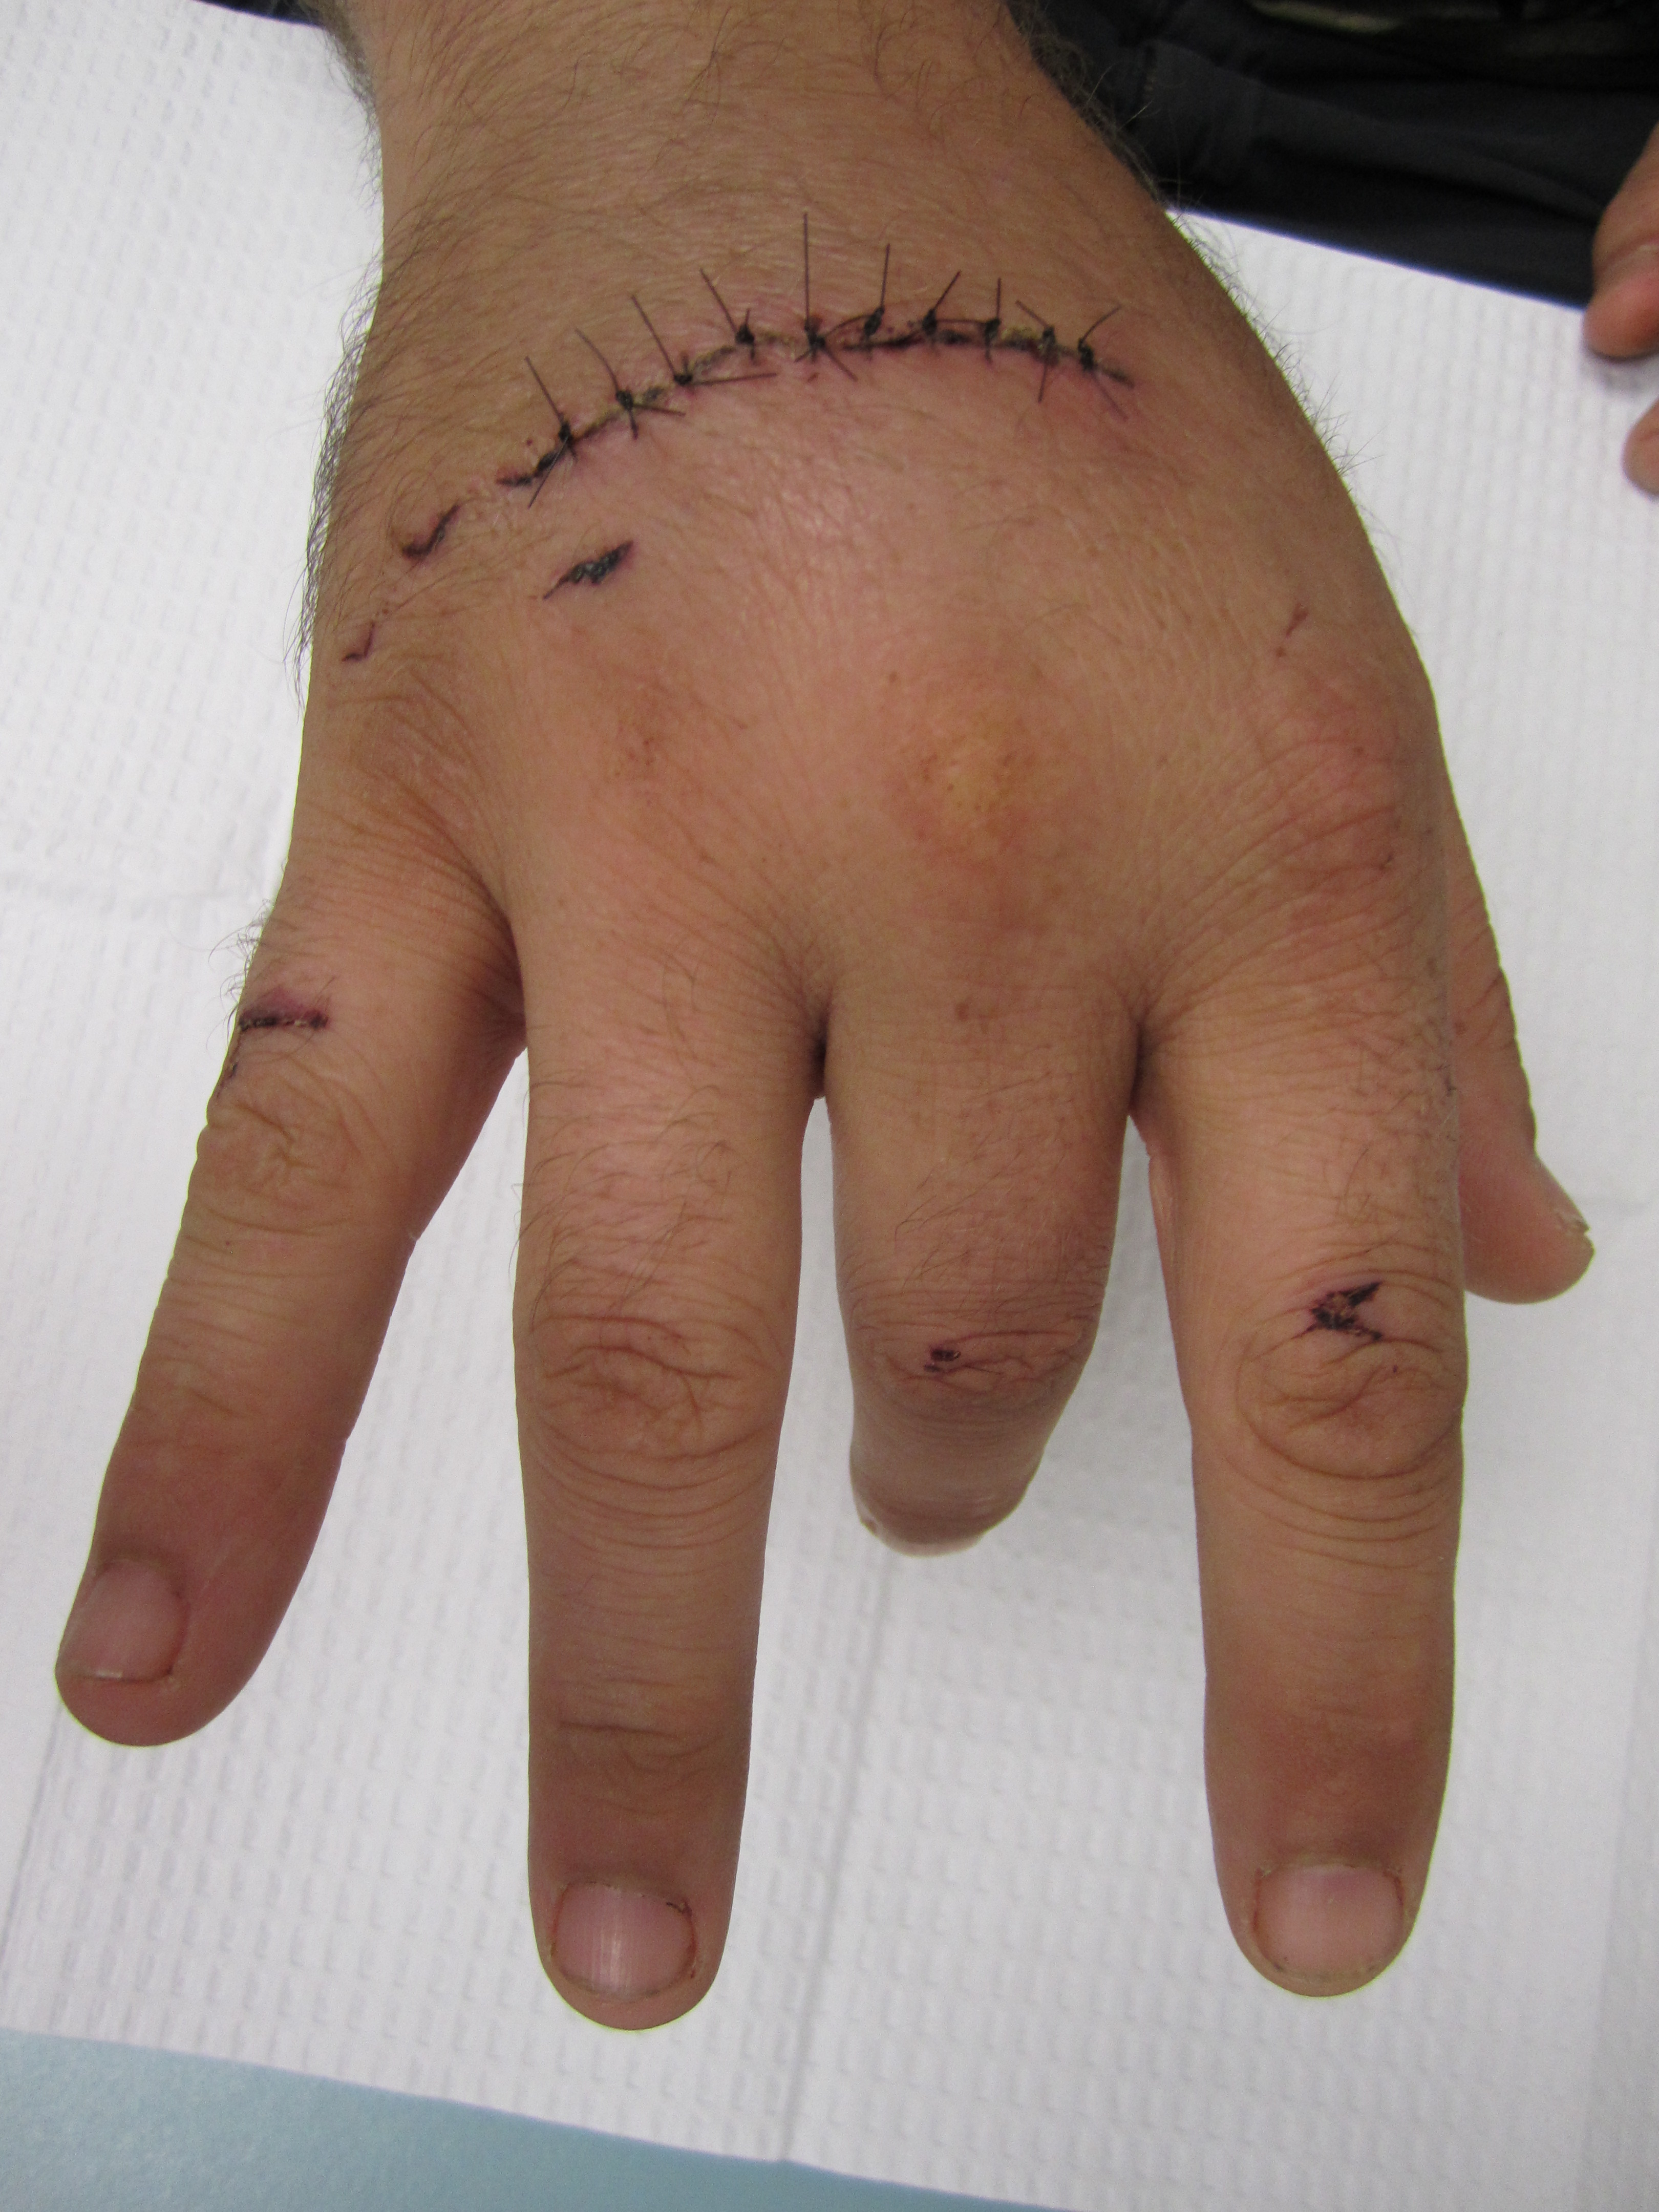 Extensor Tendon Injury In Hand